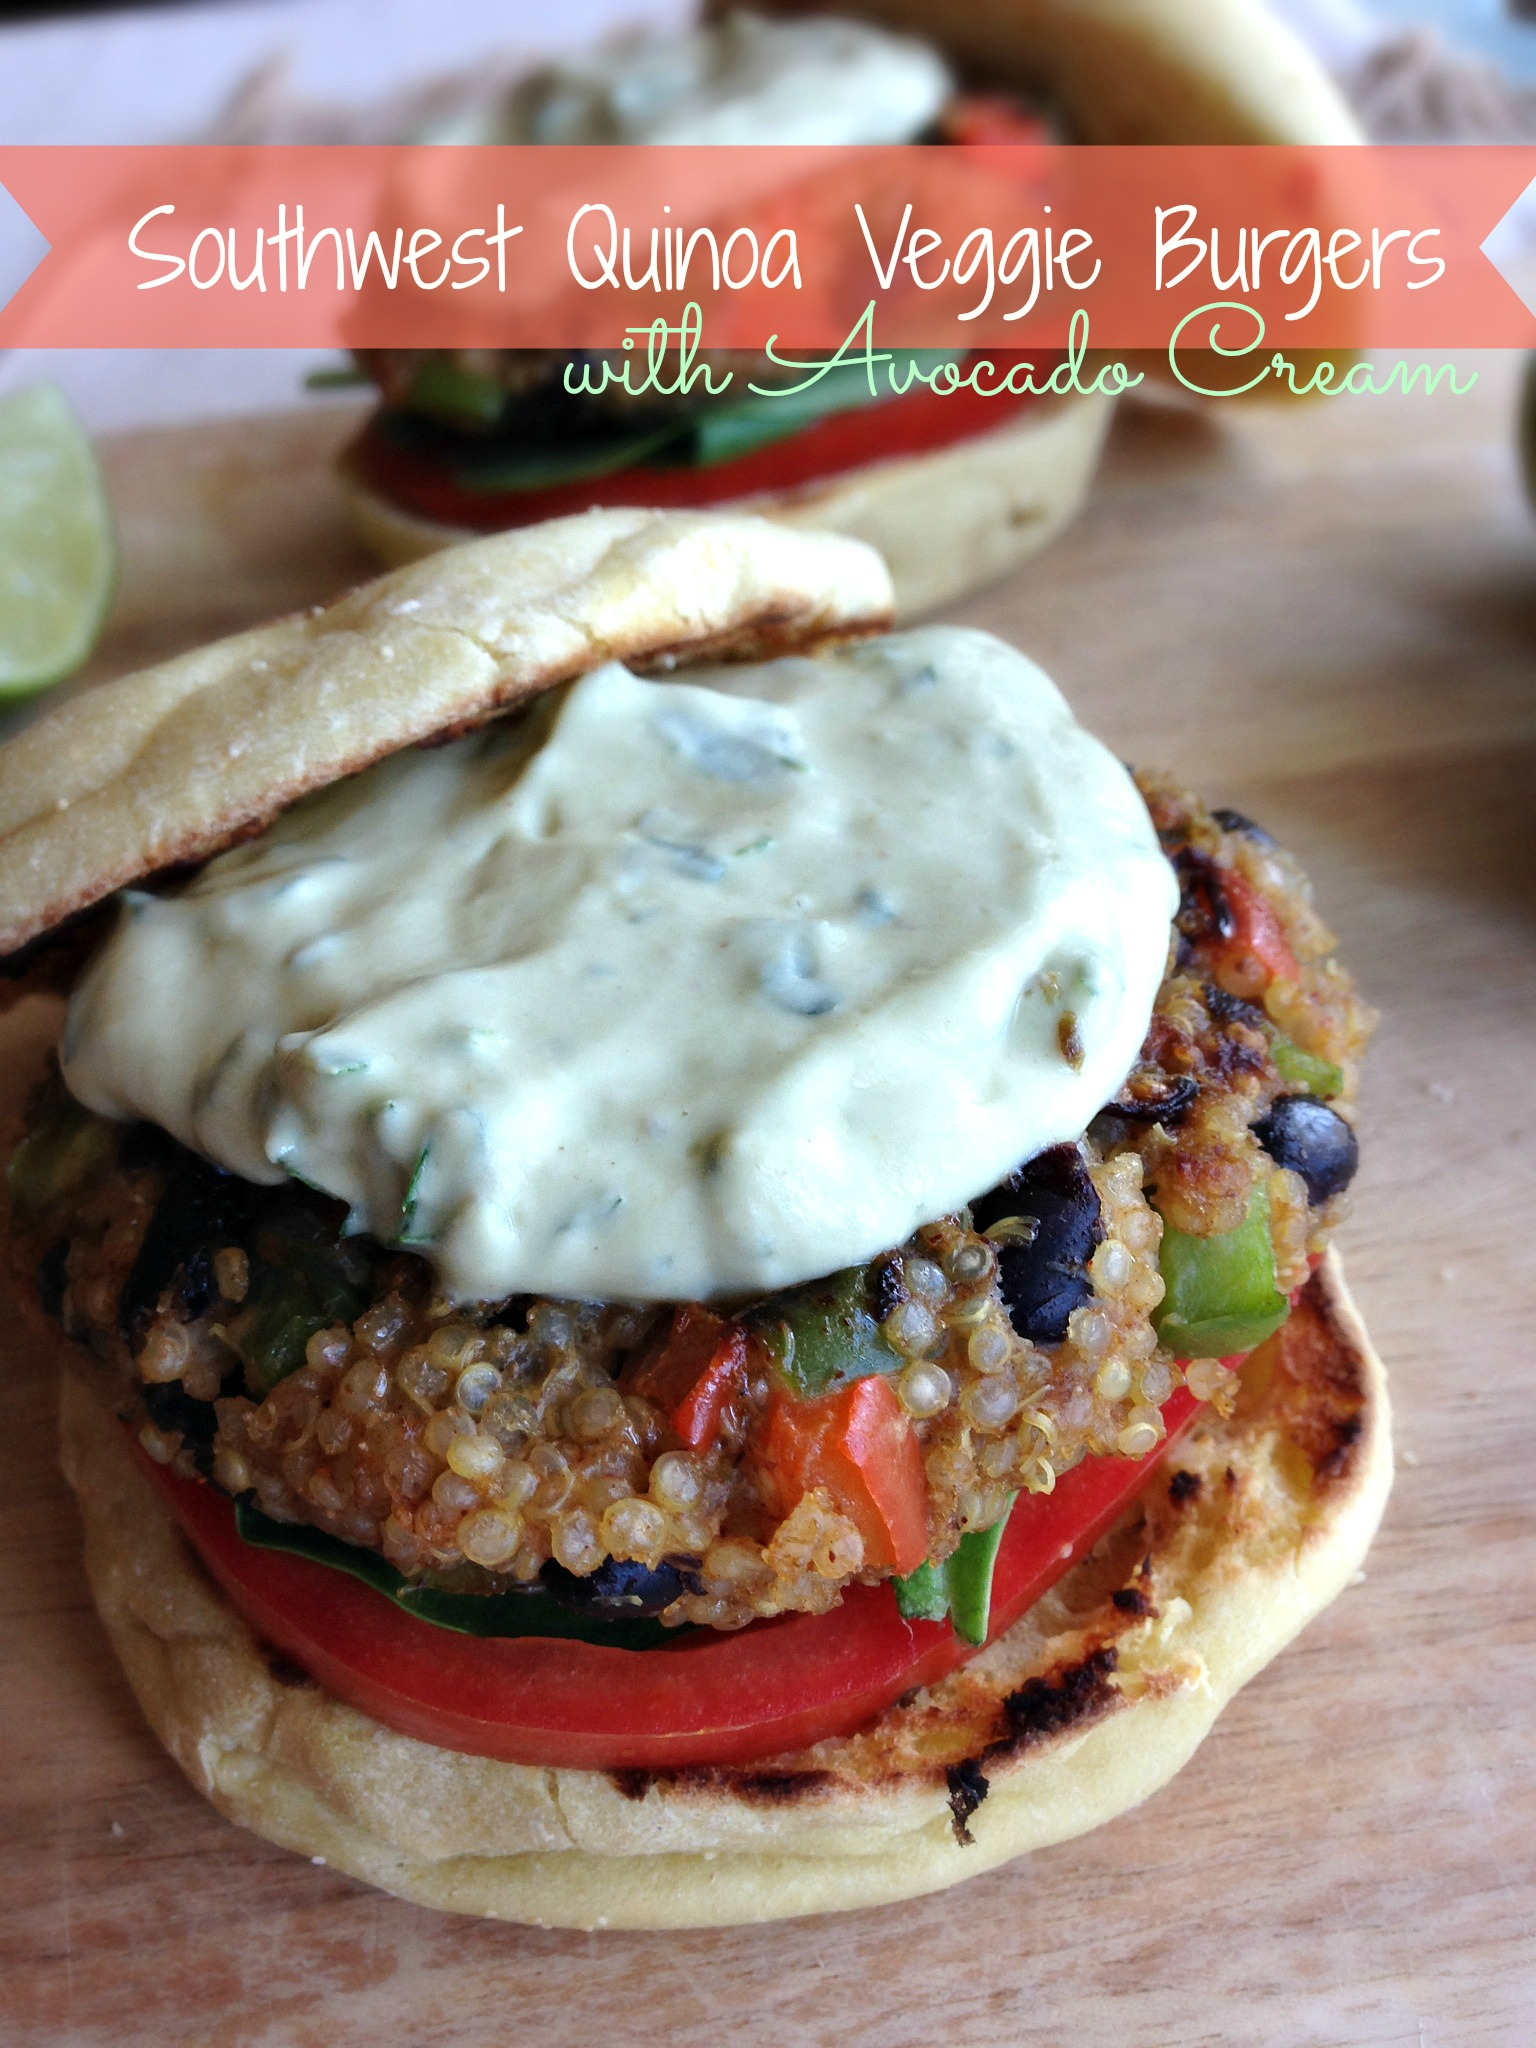 Southwest Quinoa Veggie Burgers with Avocado Cream